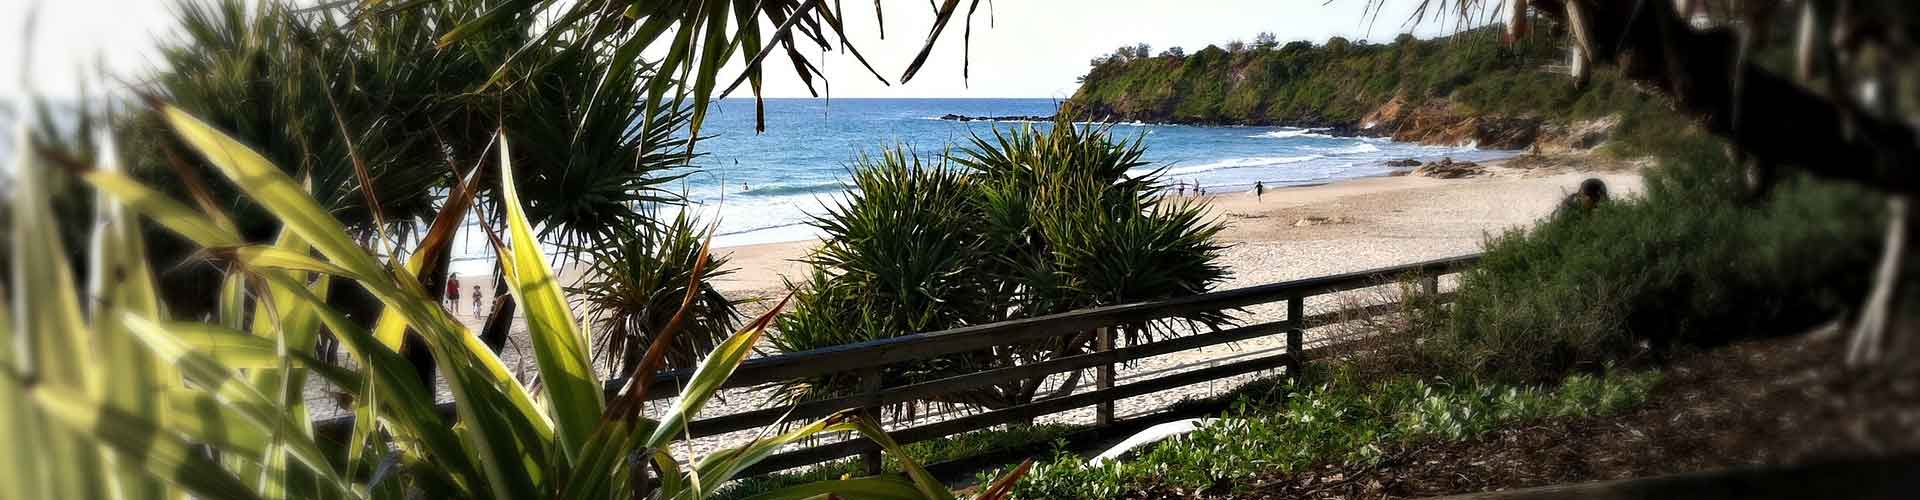 Sunshine Coast Queensland Beaches